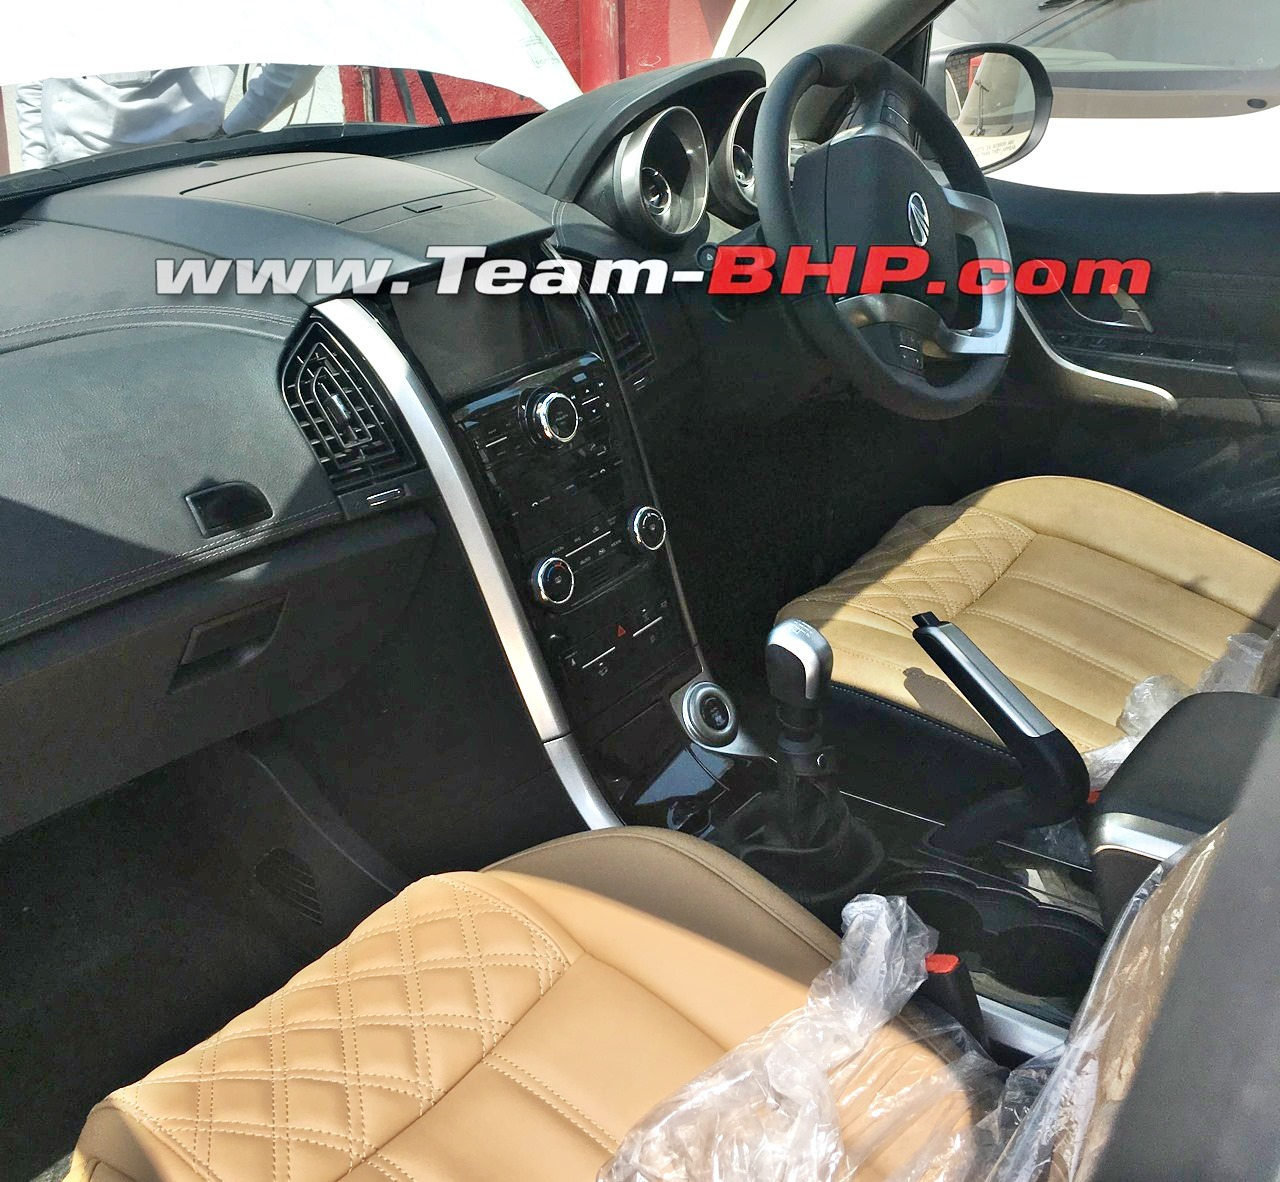 More Images Of 2018 Mahindra Xuv500 Interior Surface Online